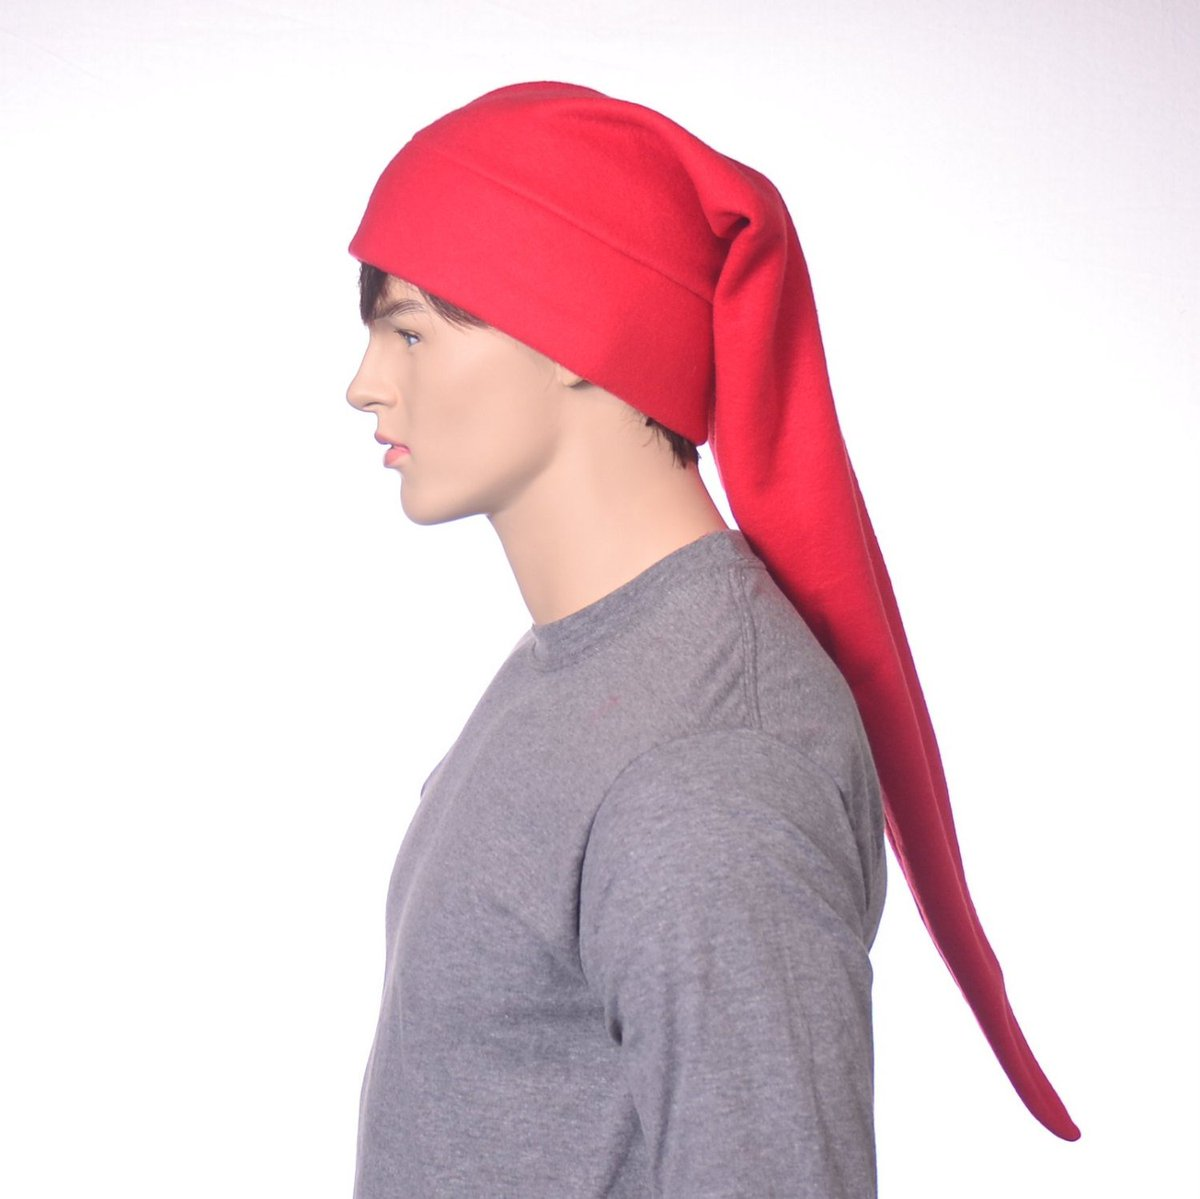 85c25764d85be Red Elf Hat Stocking Cap Hat Extra Long Red Pointed Hat Adult …  http   tuppu.net 2fb522c4  MountainGoth  RedPointedHat  pic.twitter.com Gf43bNLvDG